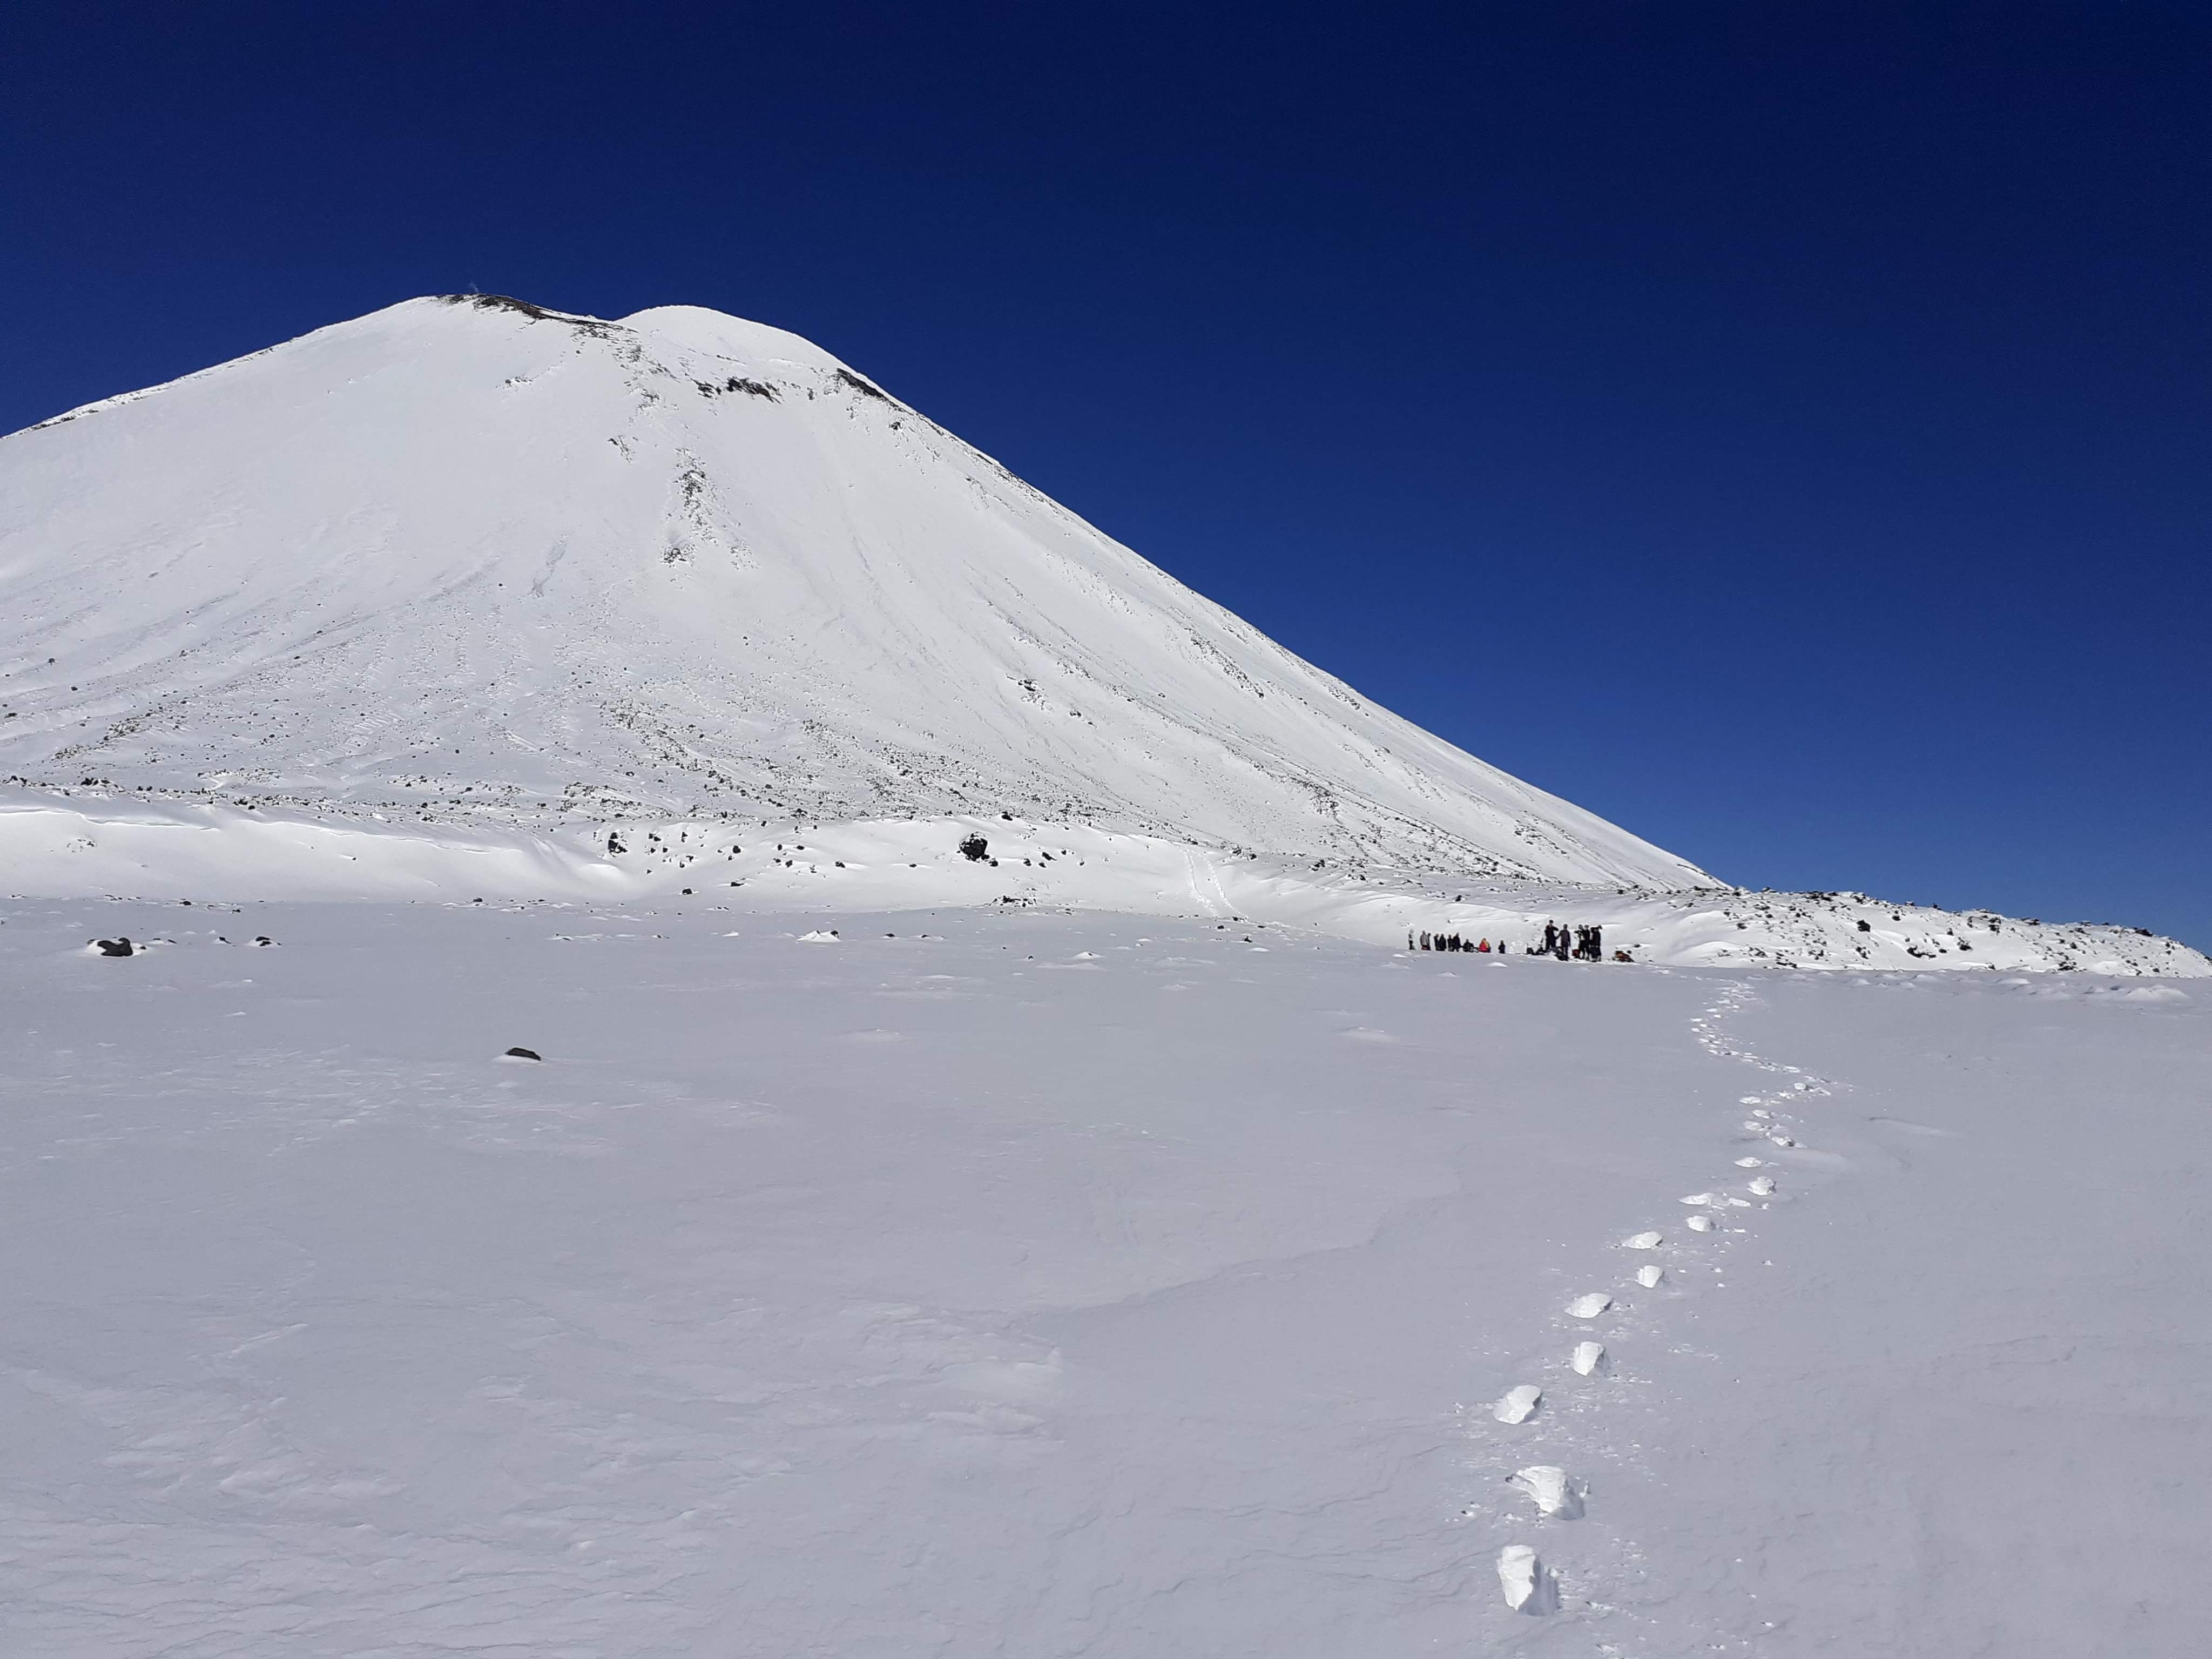 Tongariro Crossing Winter